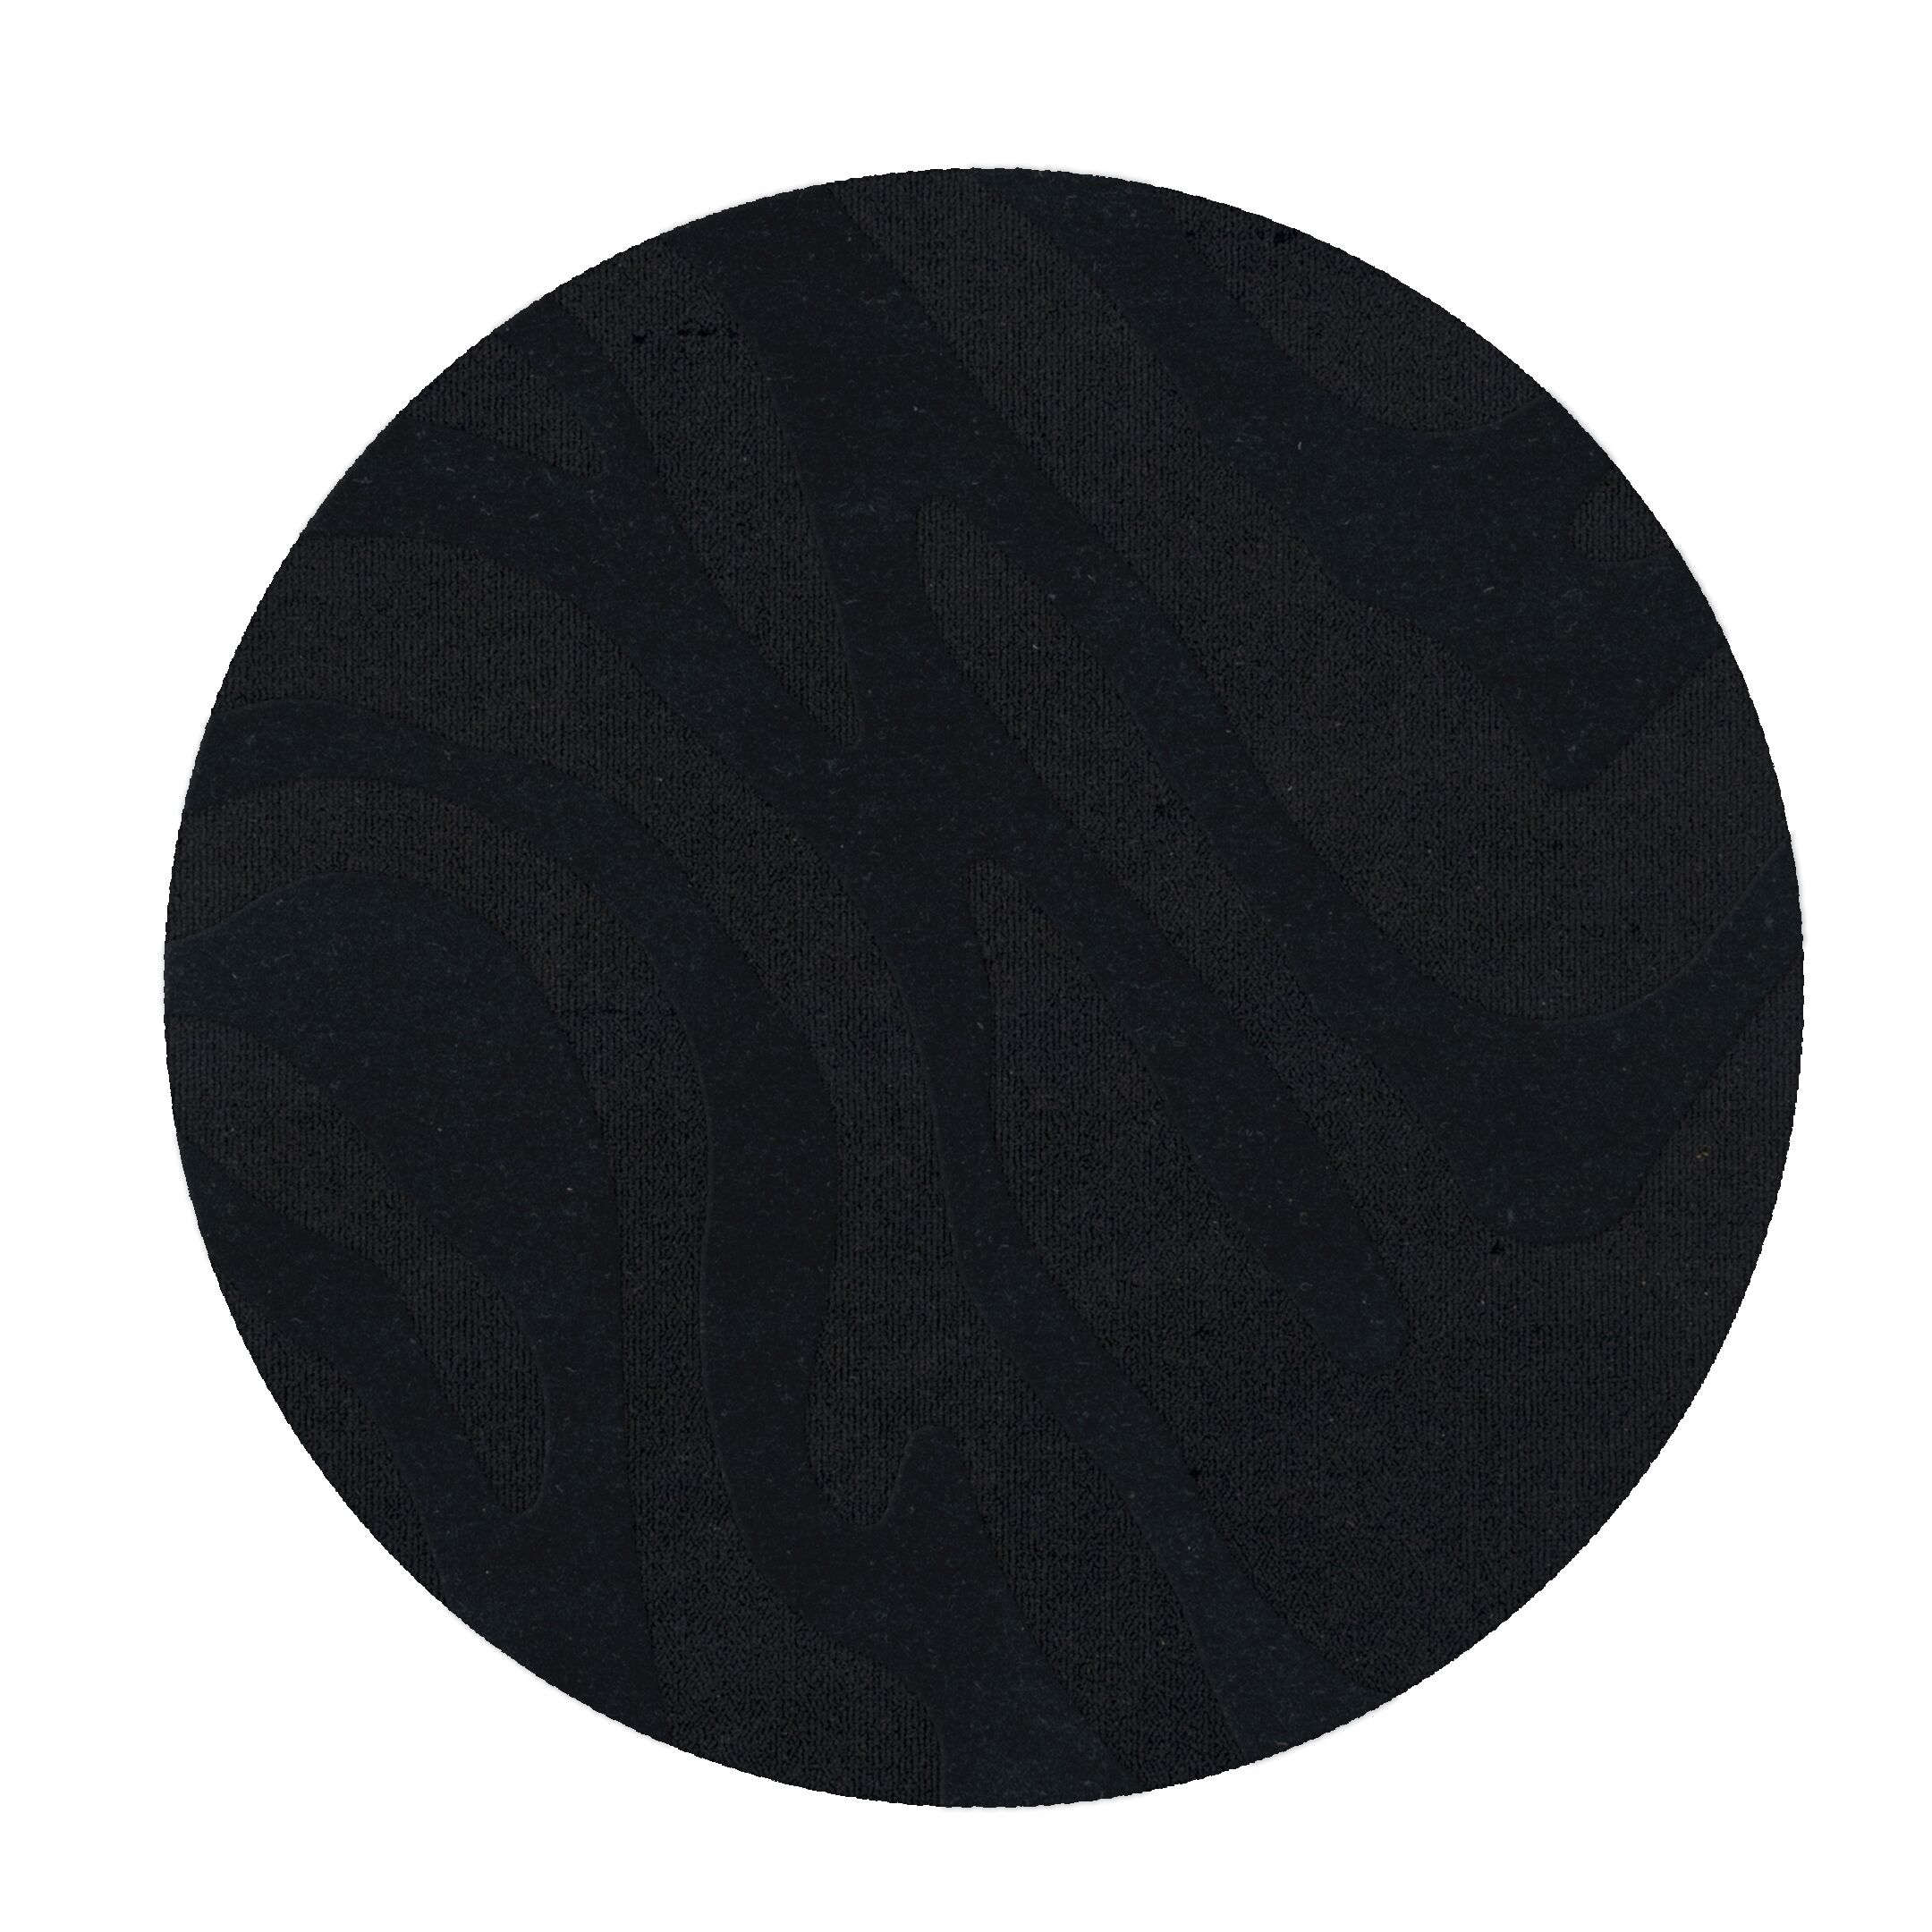 Dover Tufted Wool Black Area Rug Rug Size: Round 12'